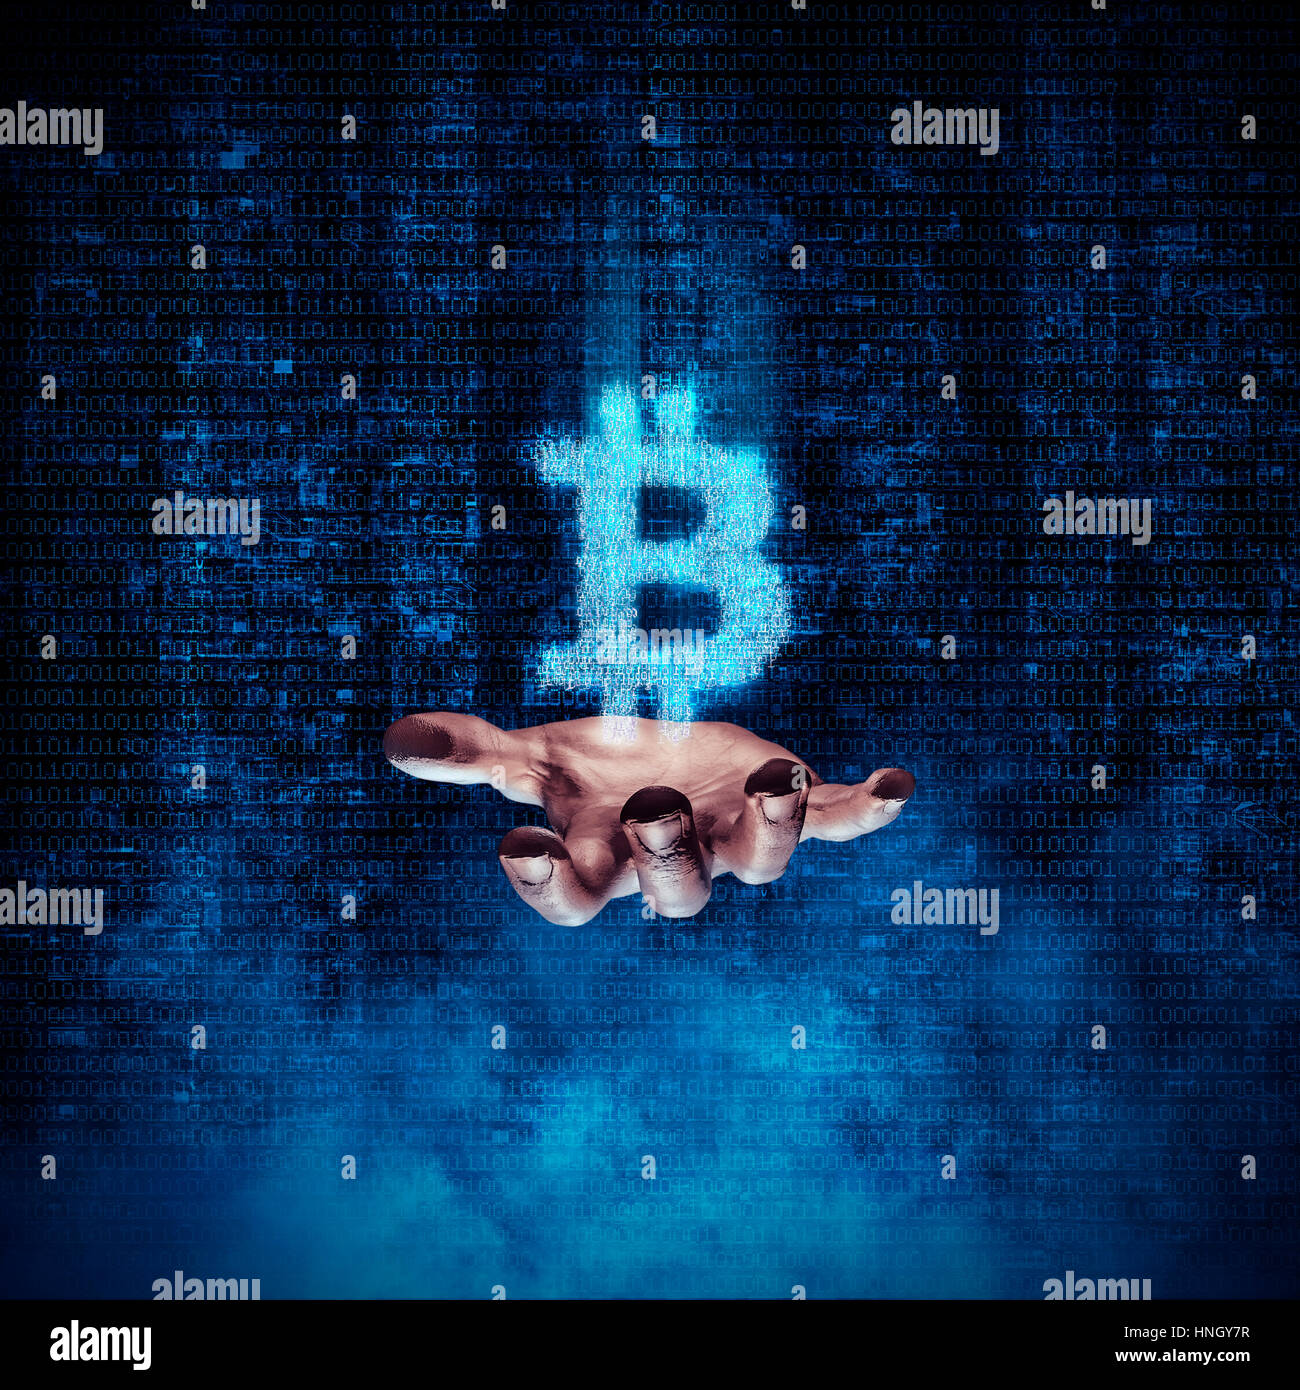 Binary Bitcoin Hand 3D Illustration Of Glowing Symbol Formed By Digits Floating Above Open